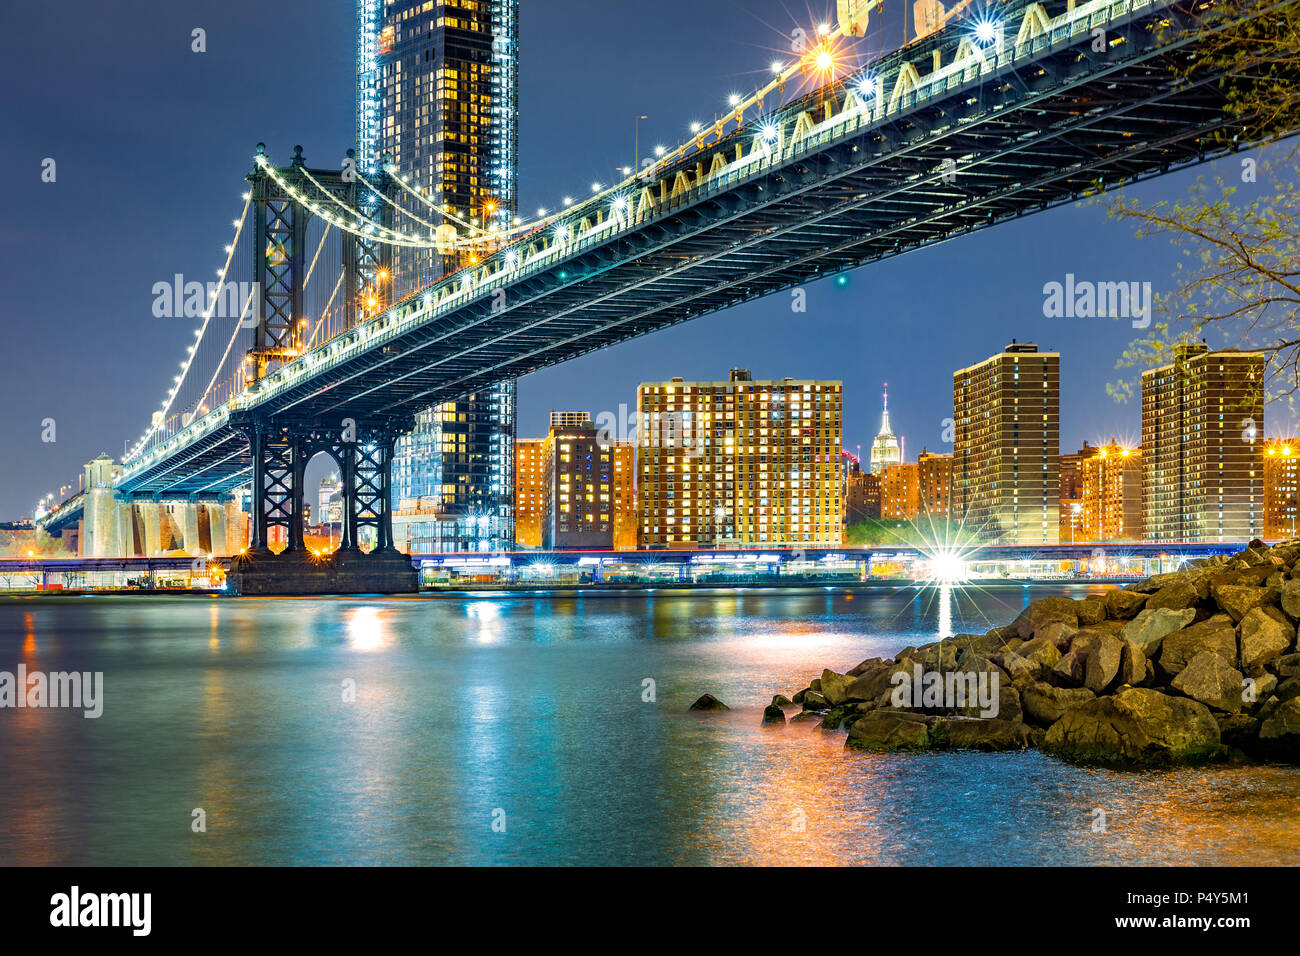 Manhattan Bridge by night - Stock Image